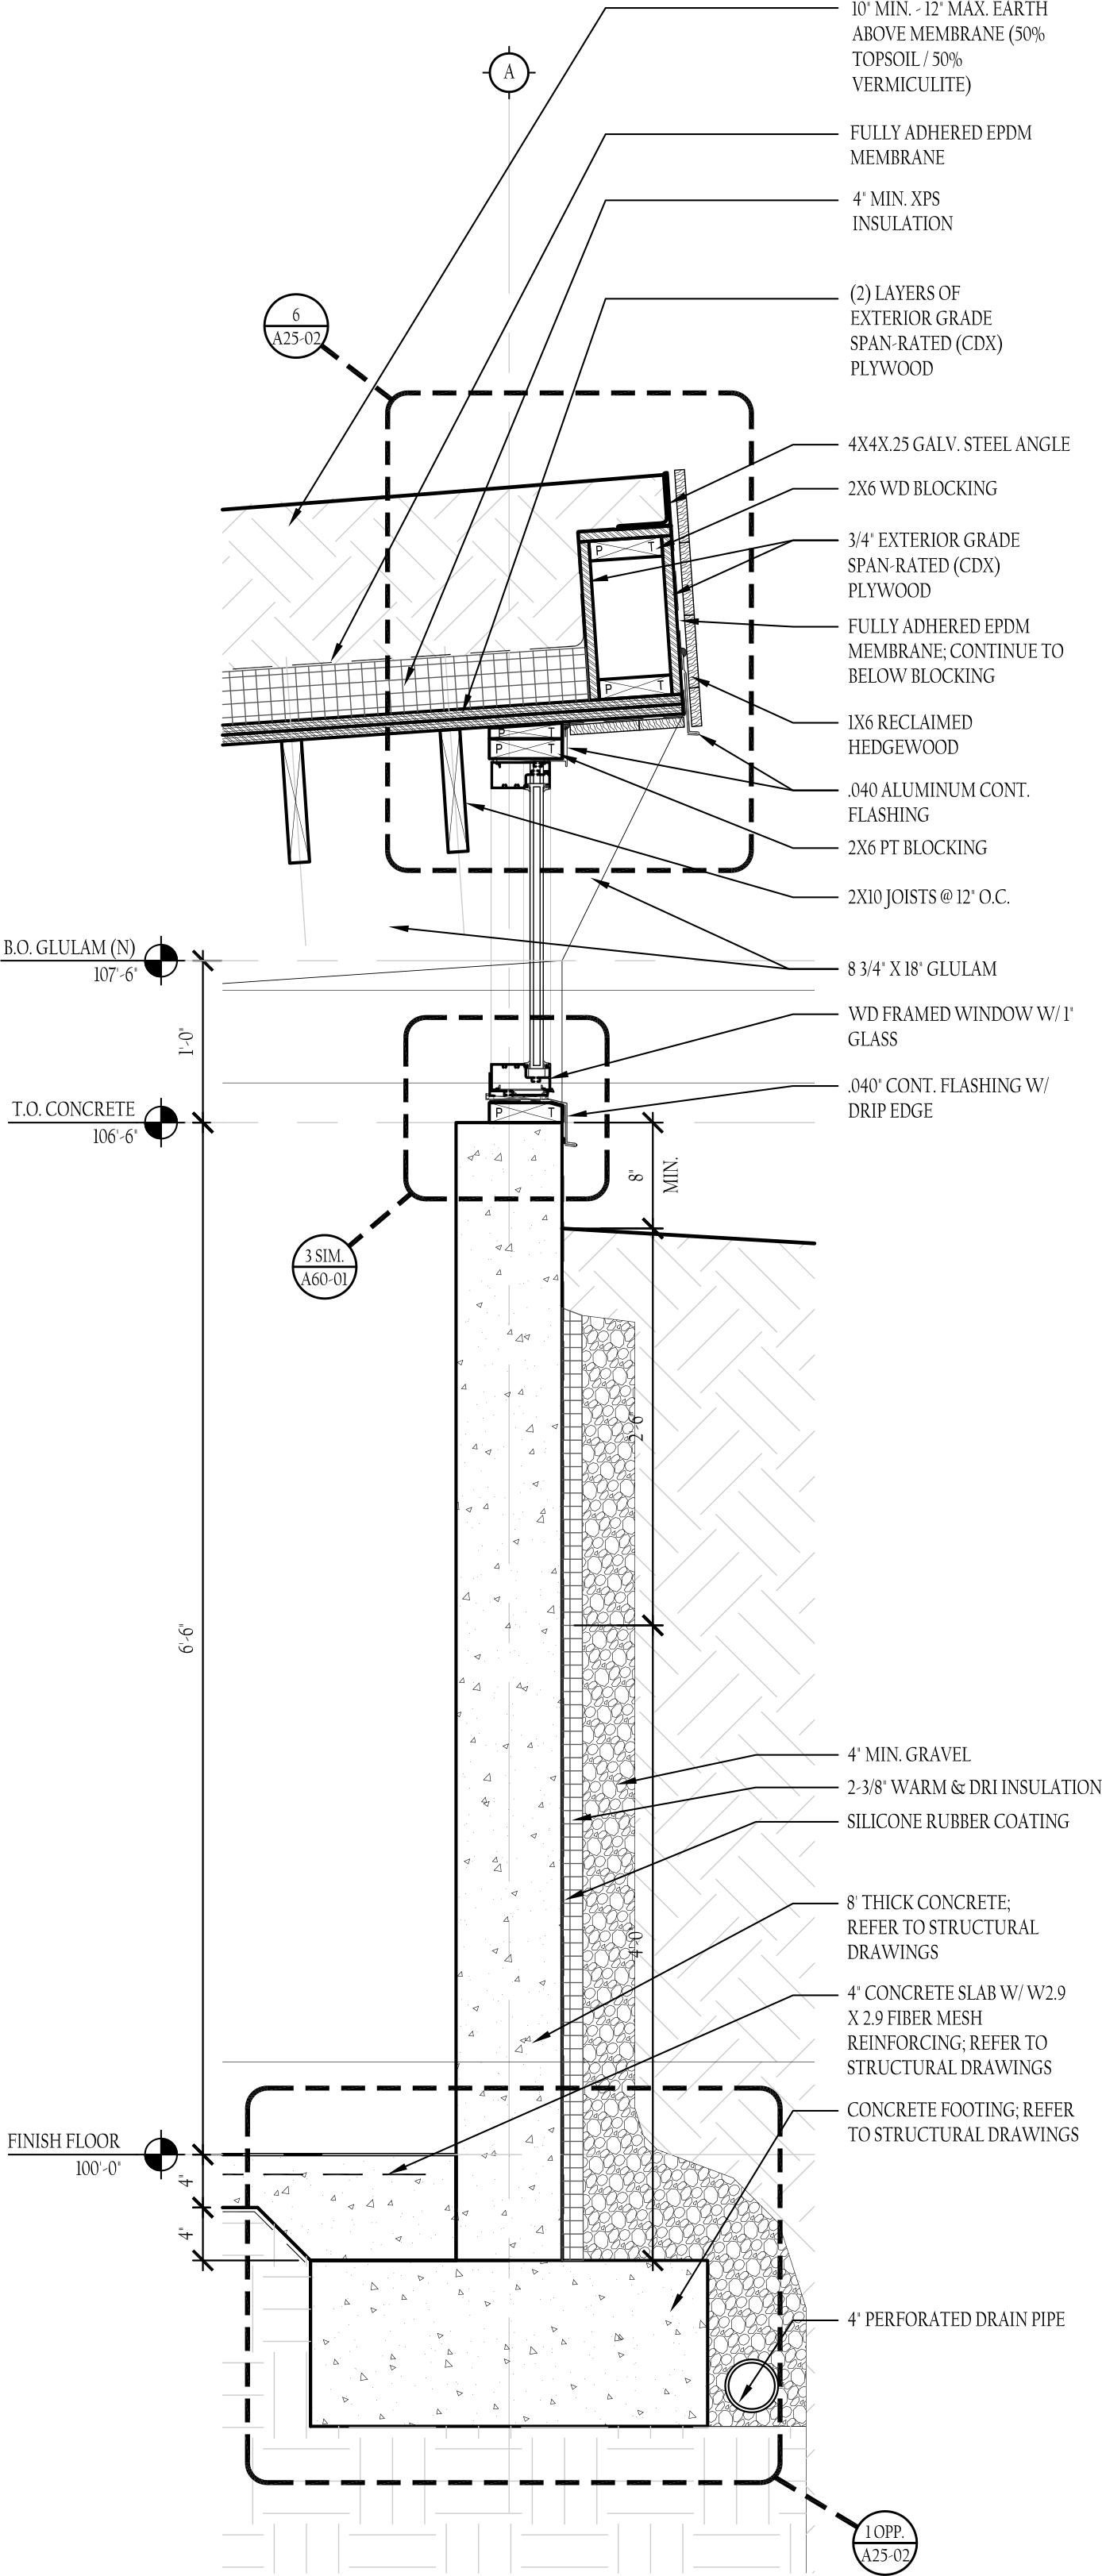 Wall Section.jpg